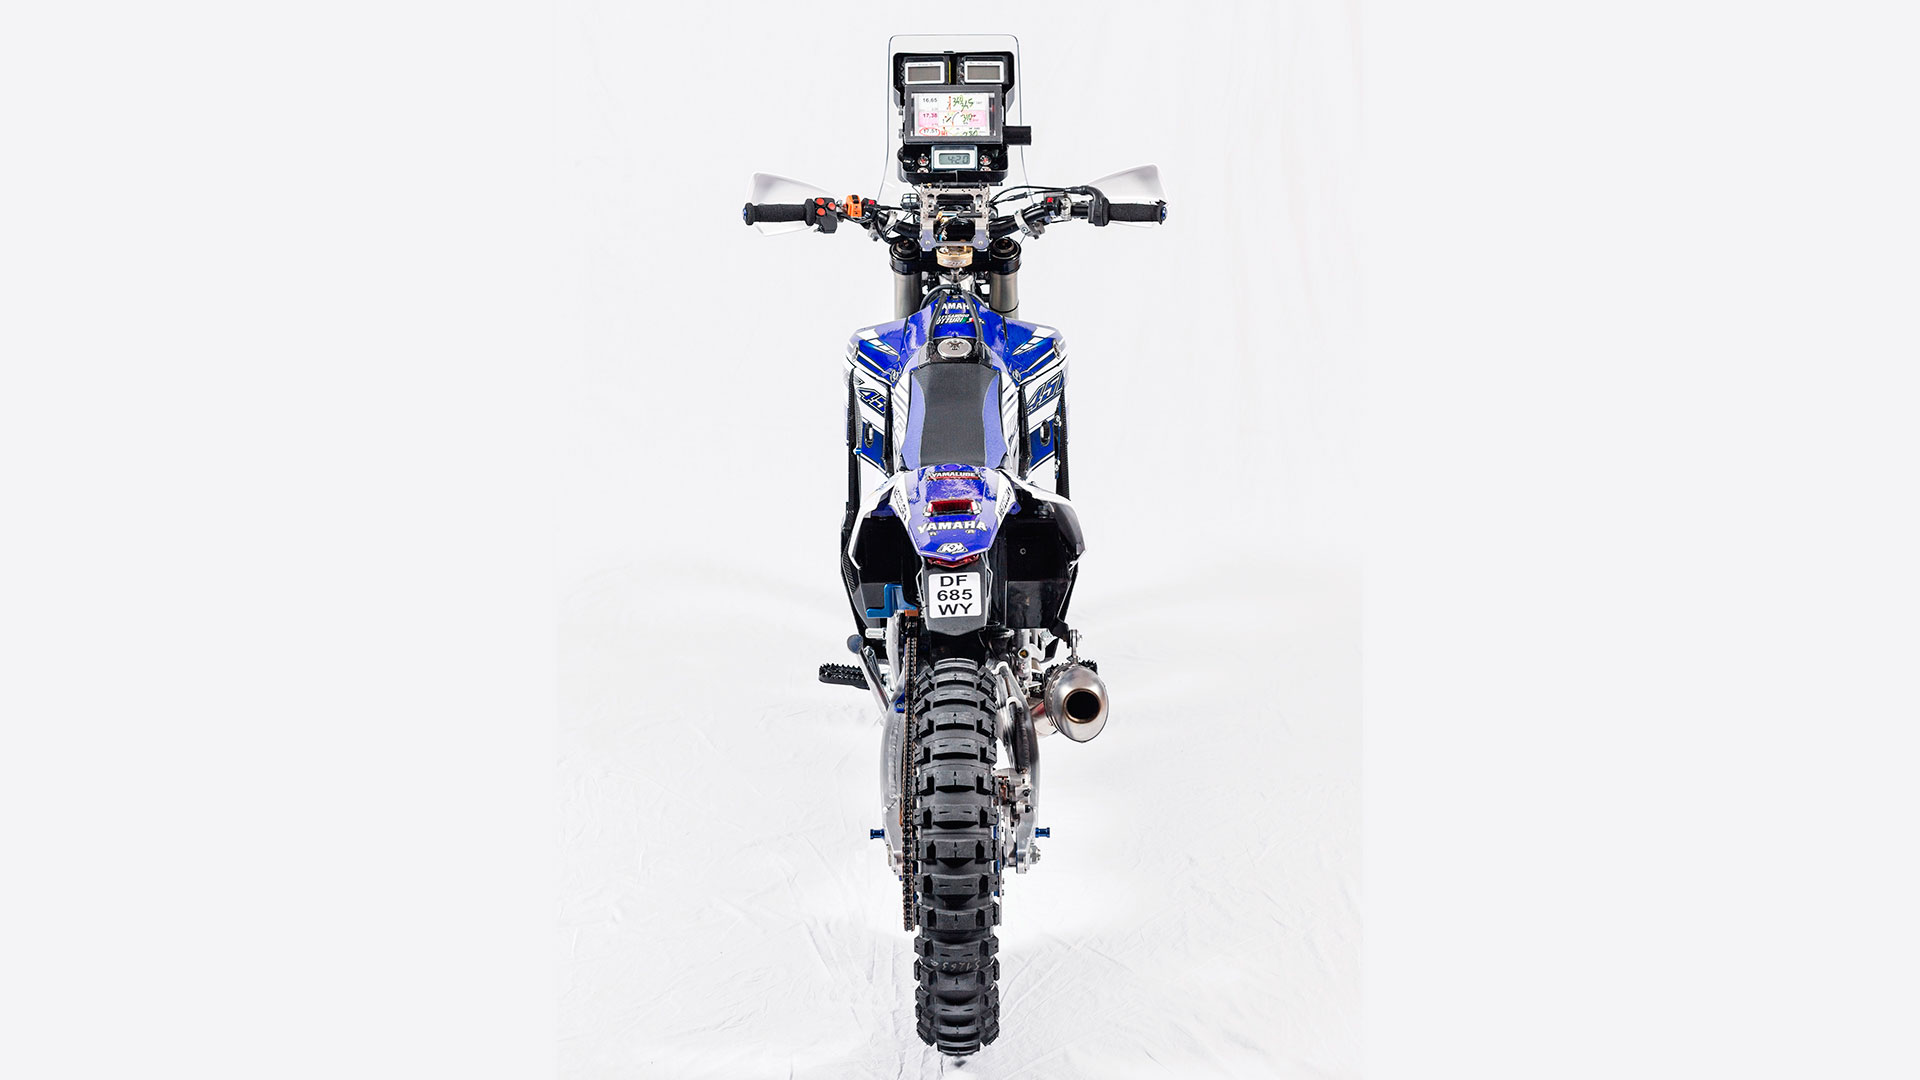 Yamaha Unleashes Wr450f Dakar Rally Weapon